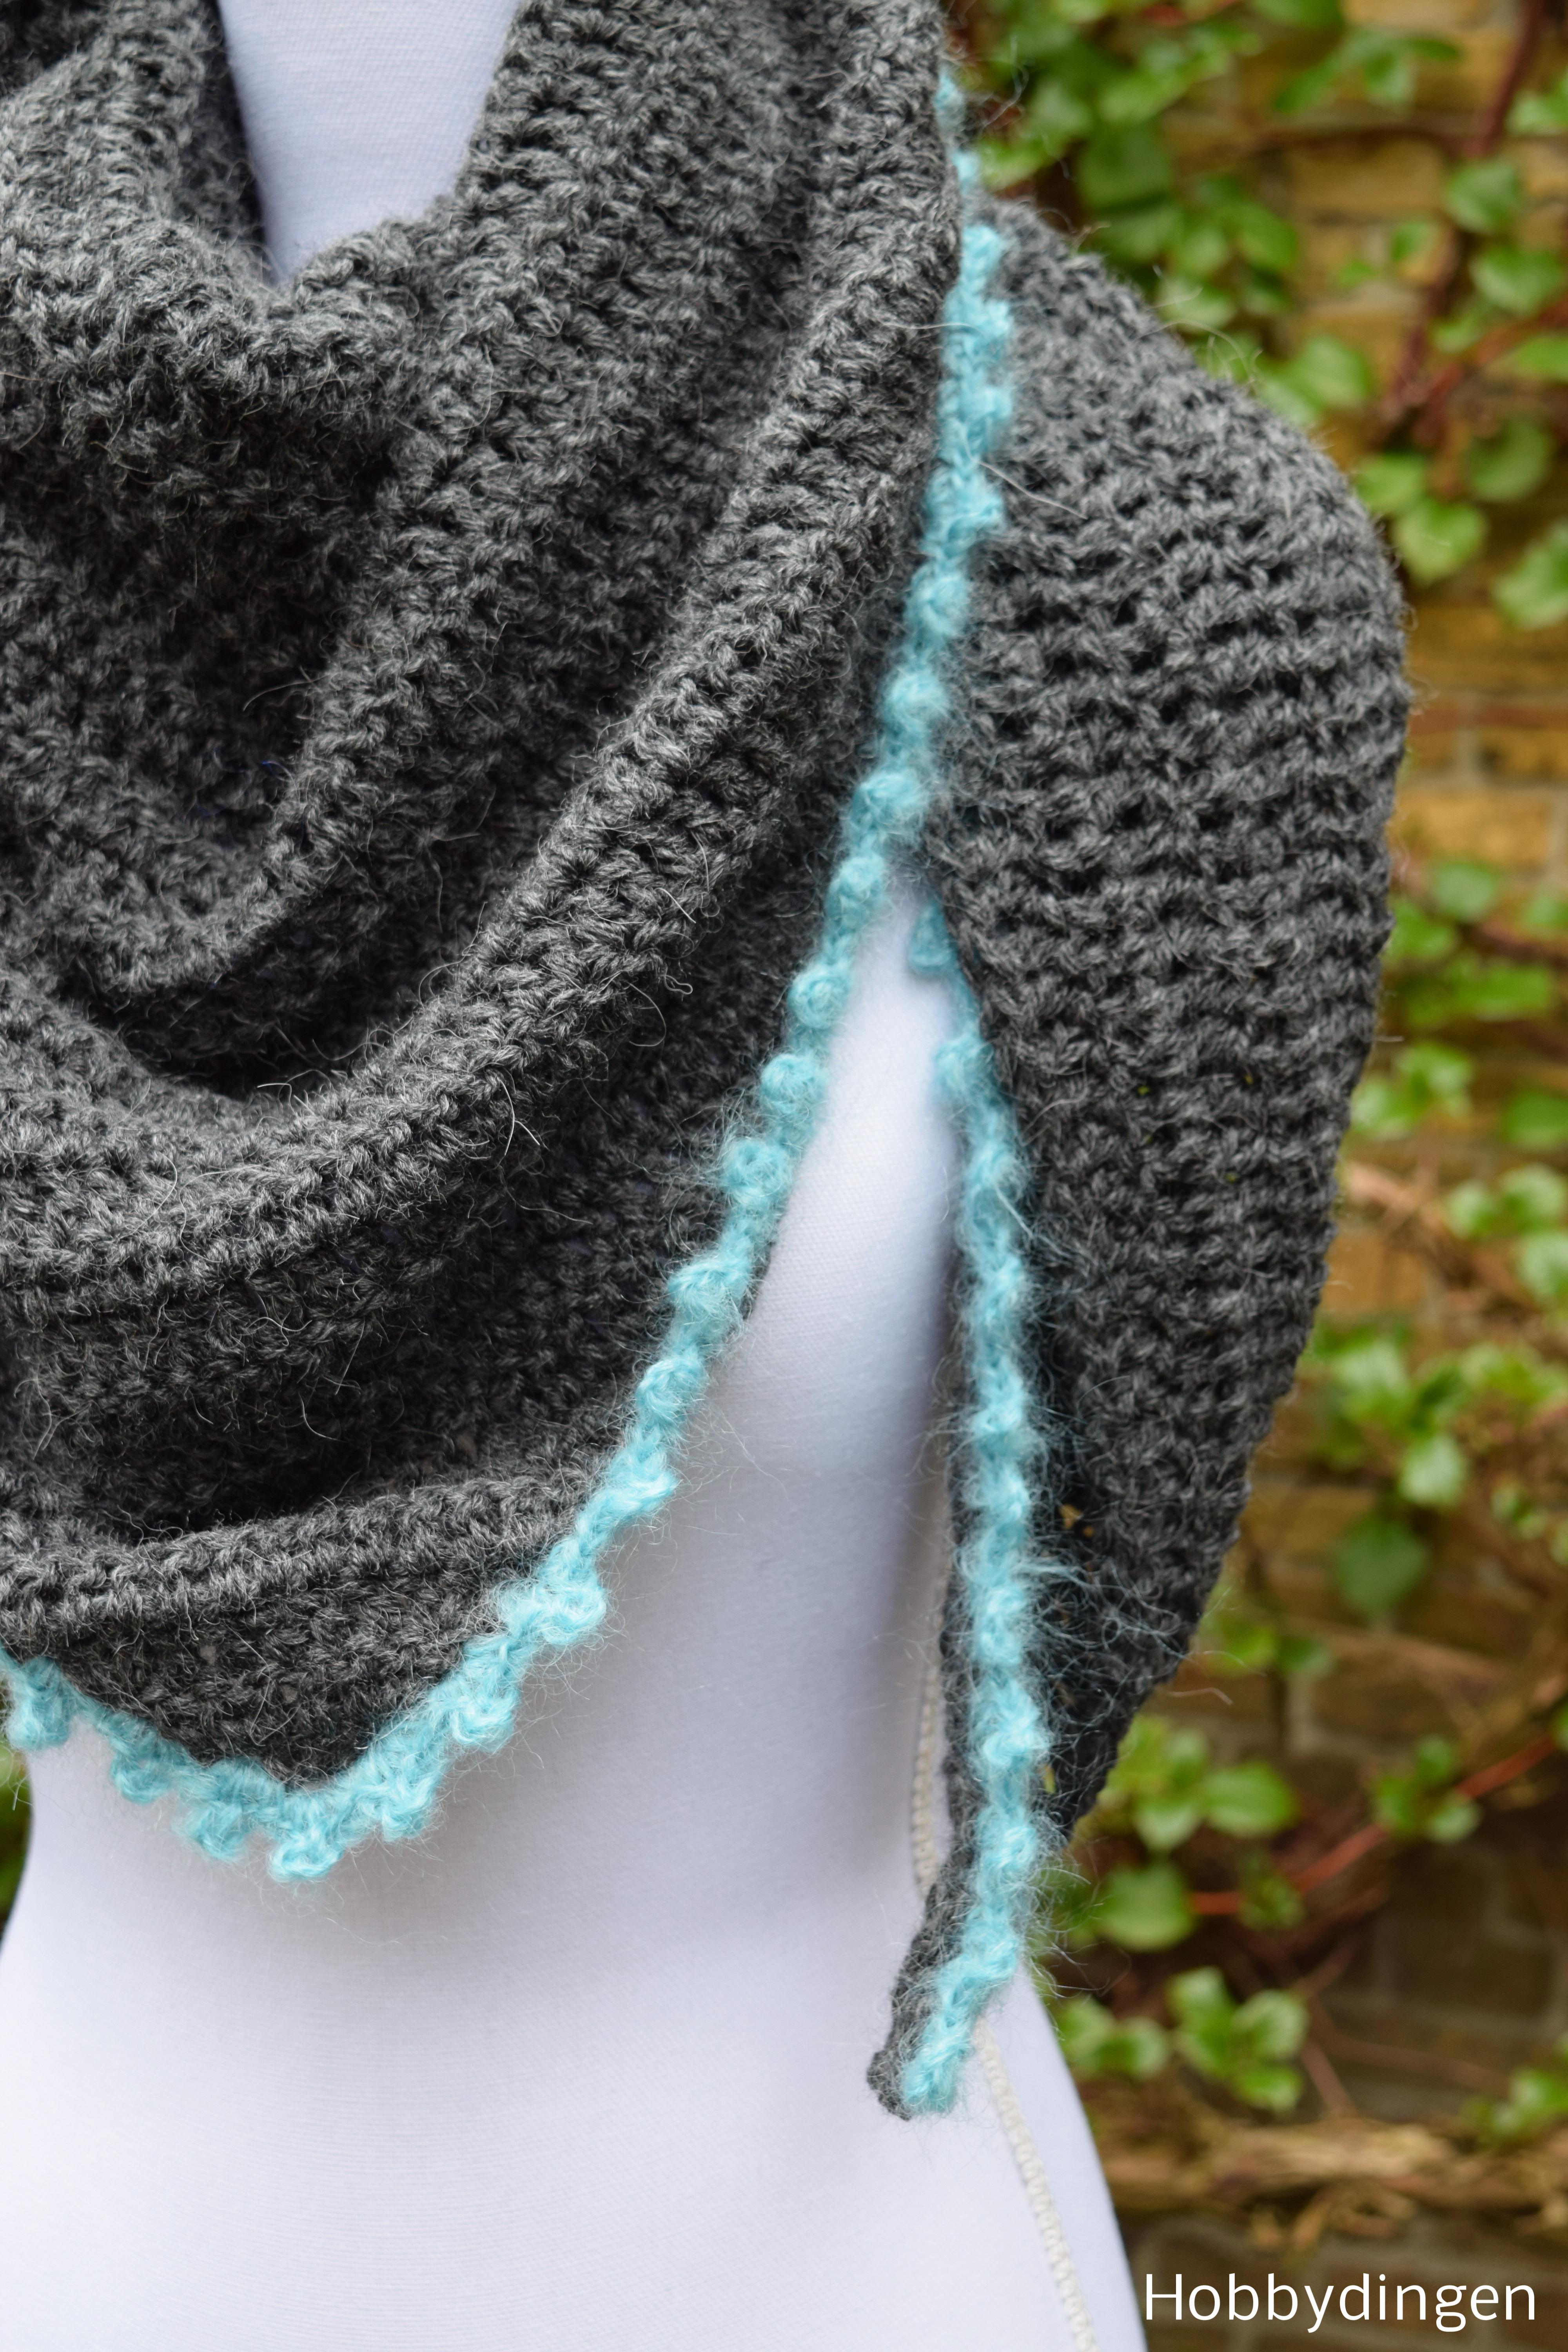 Hobbydingen.com - The Adventure Shawl